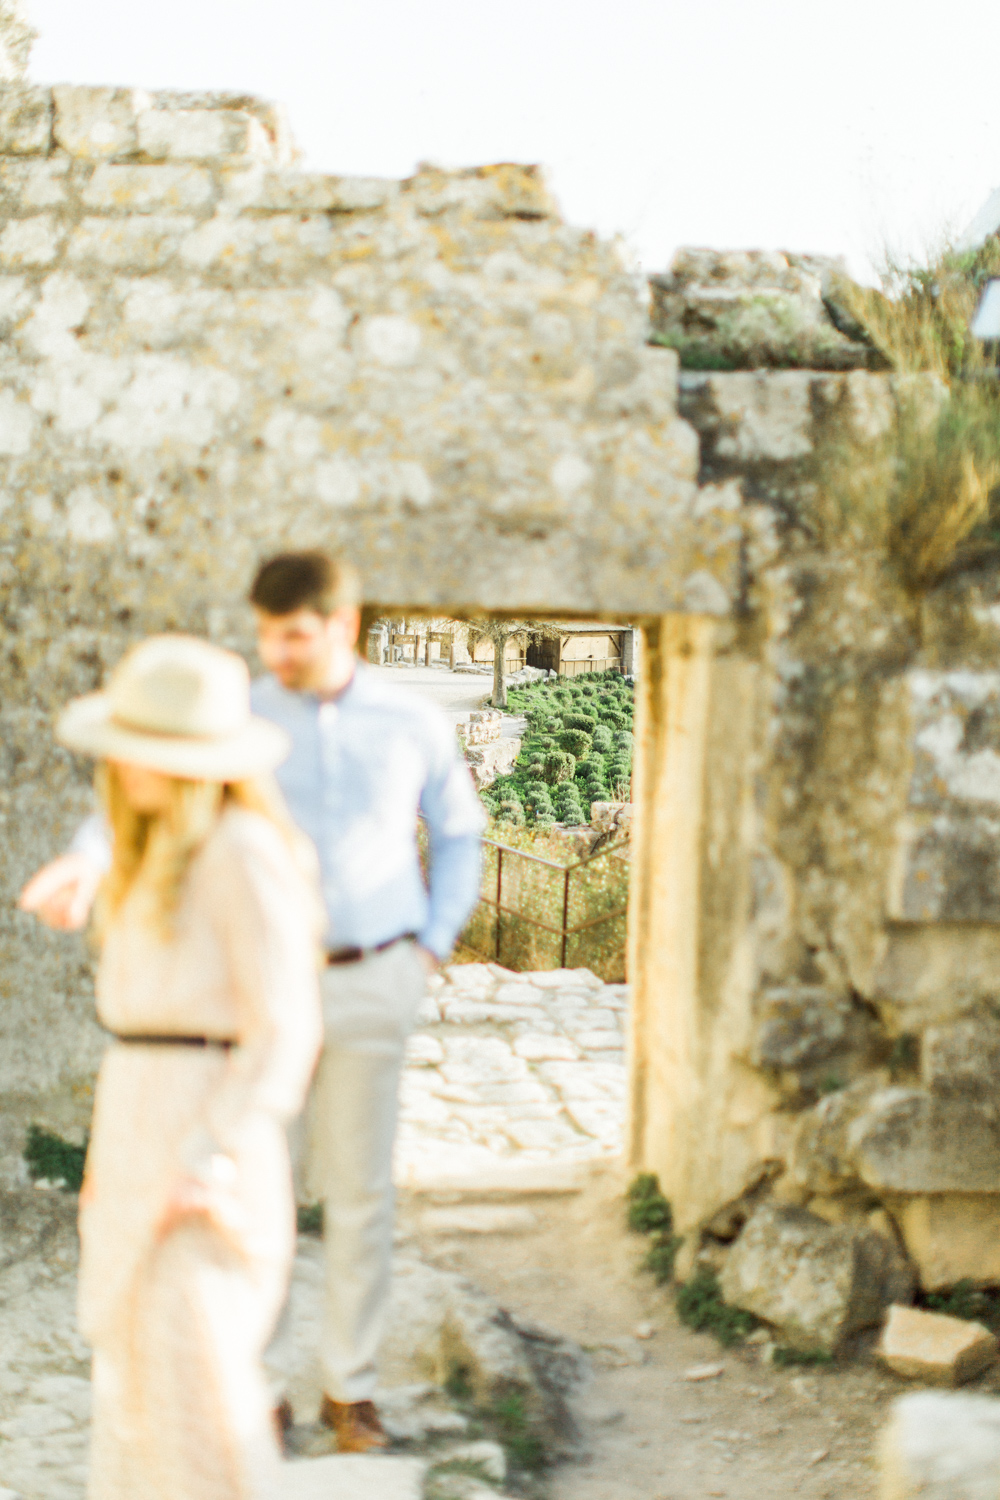 Chateau-des-Baux-de-Provence-Engagement-Session-13.jpg